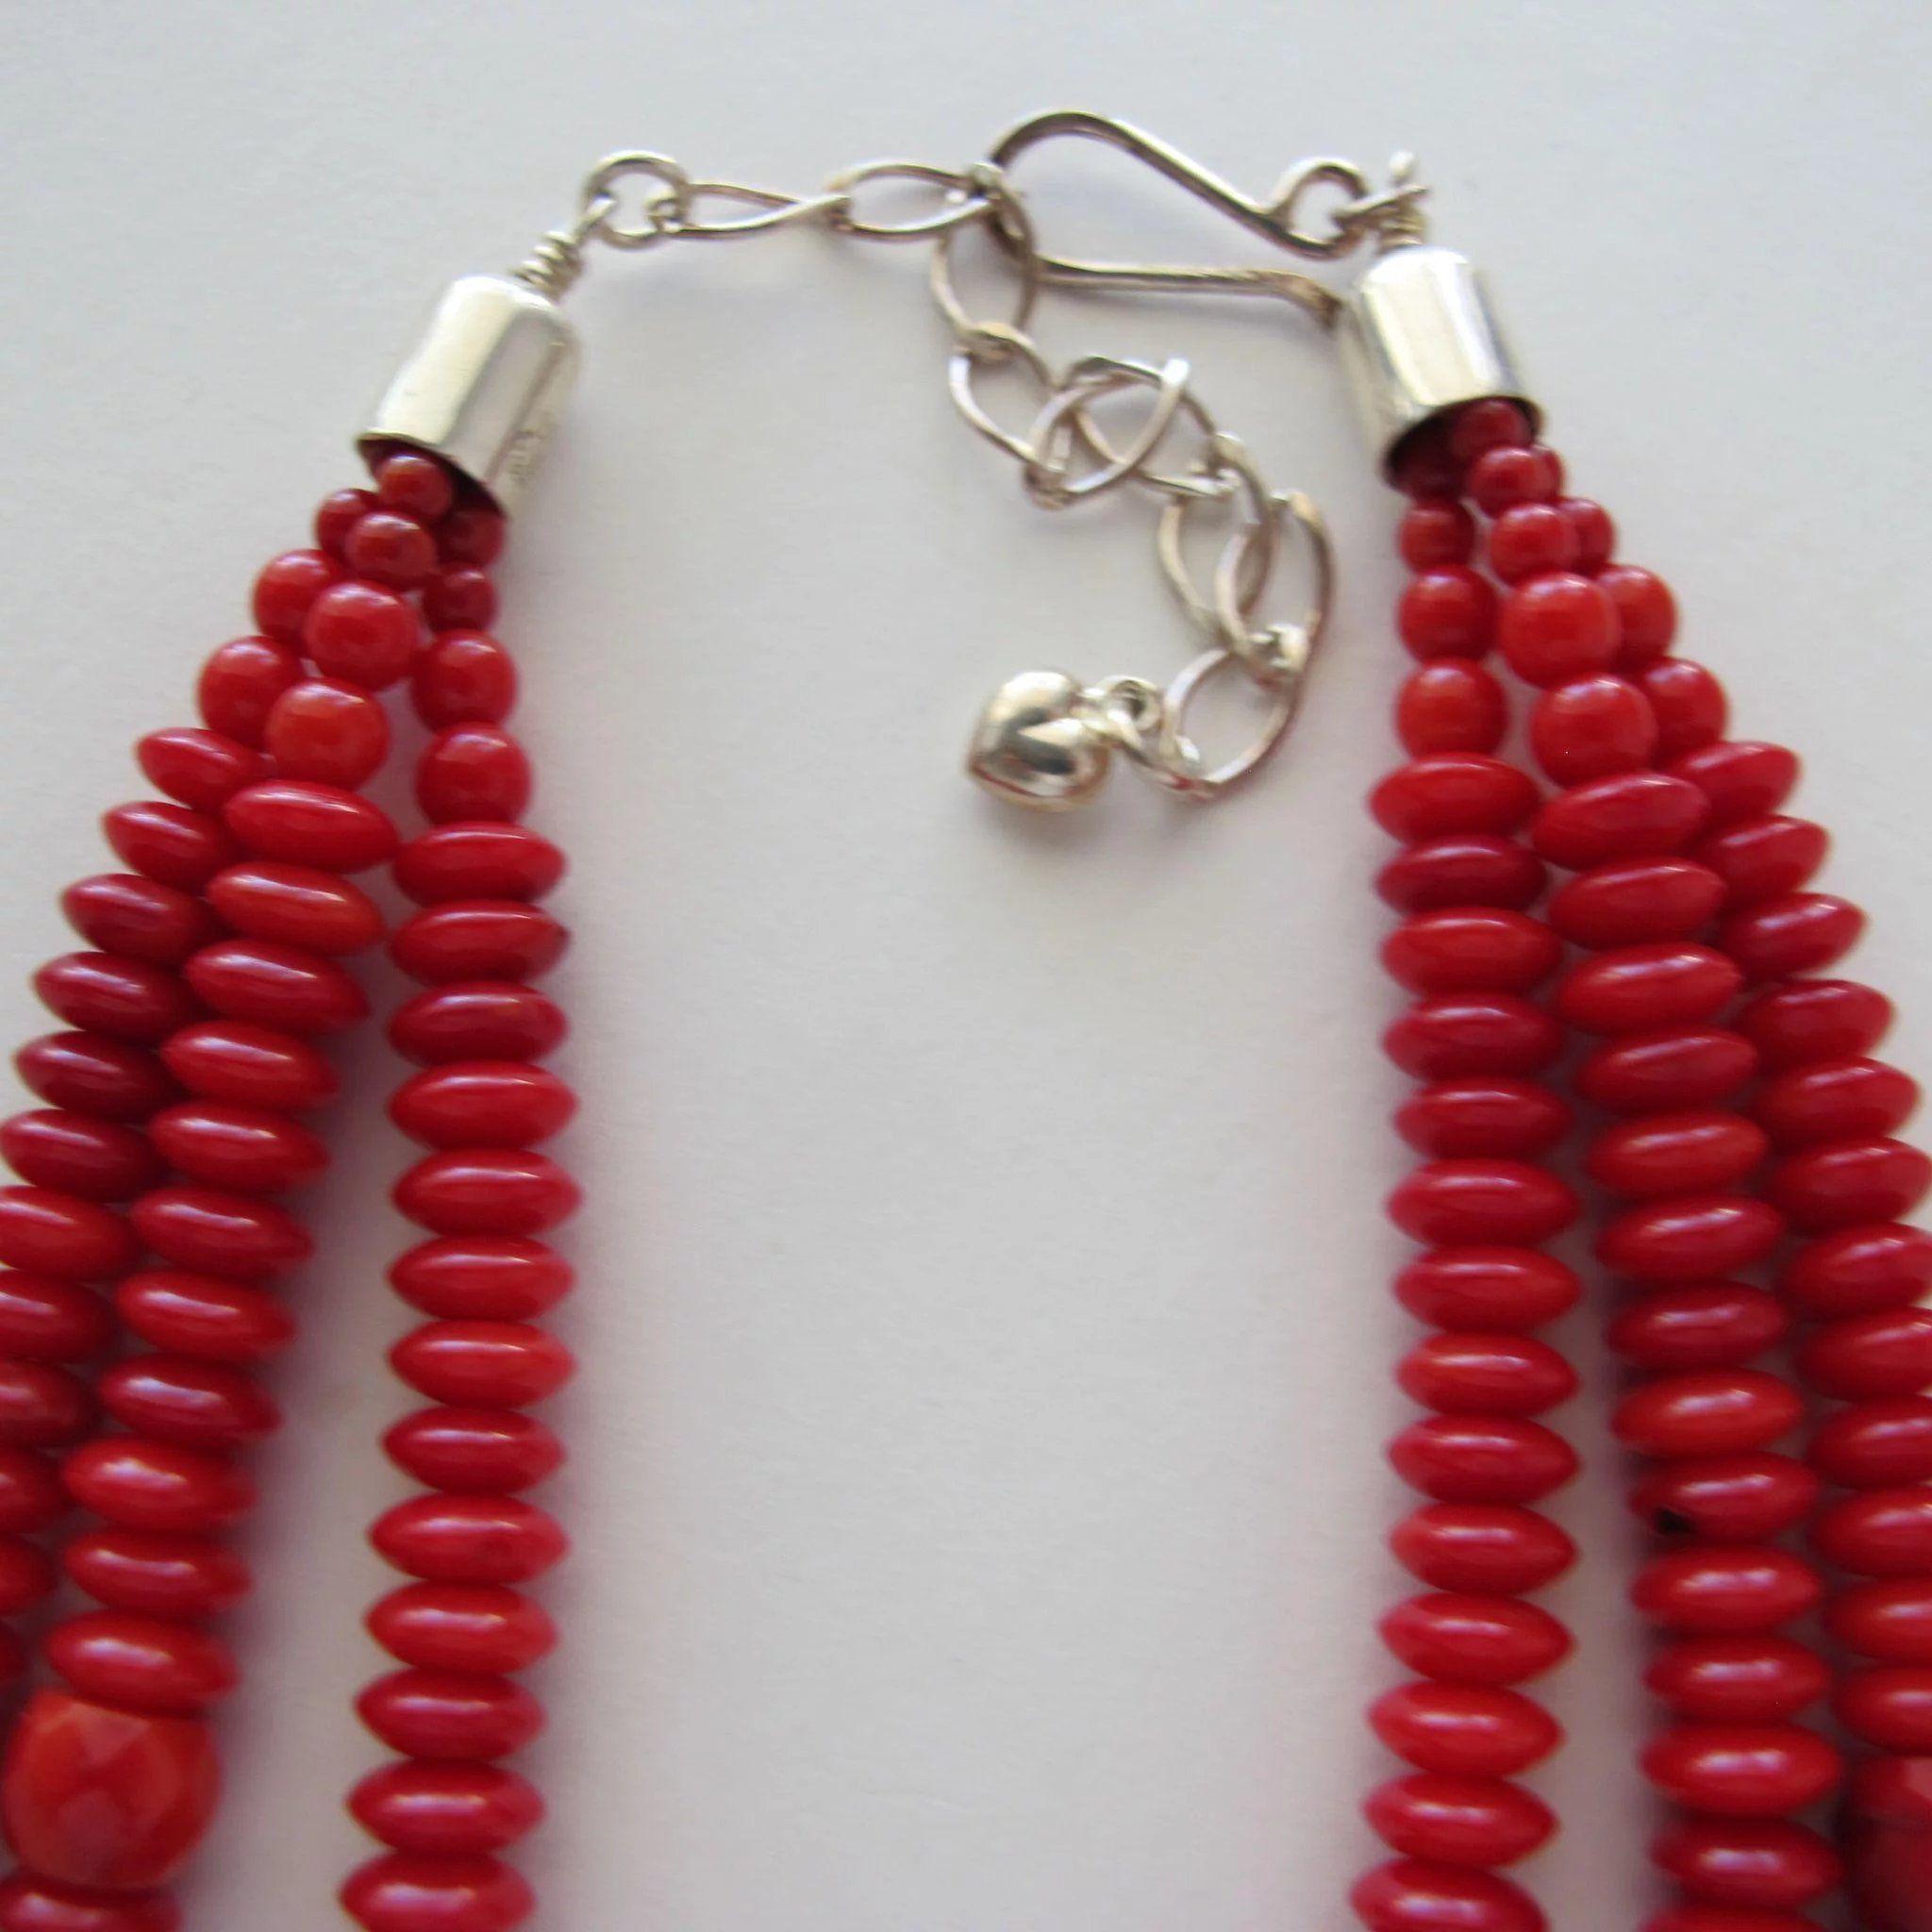 Coral Color Necklace Three Strands With Sterling Silver